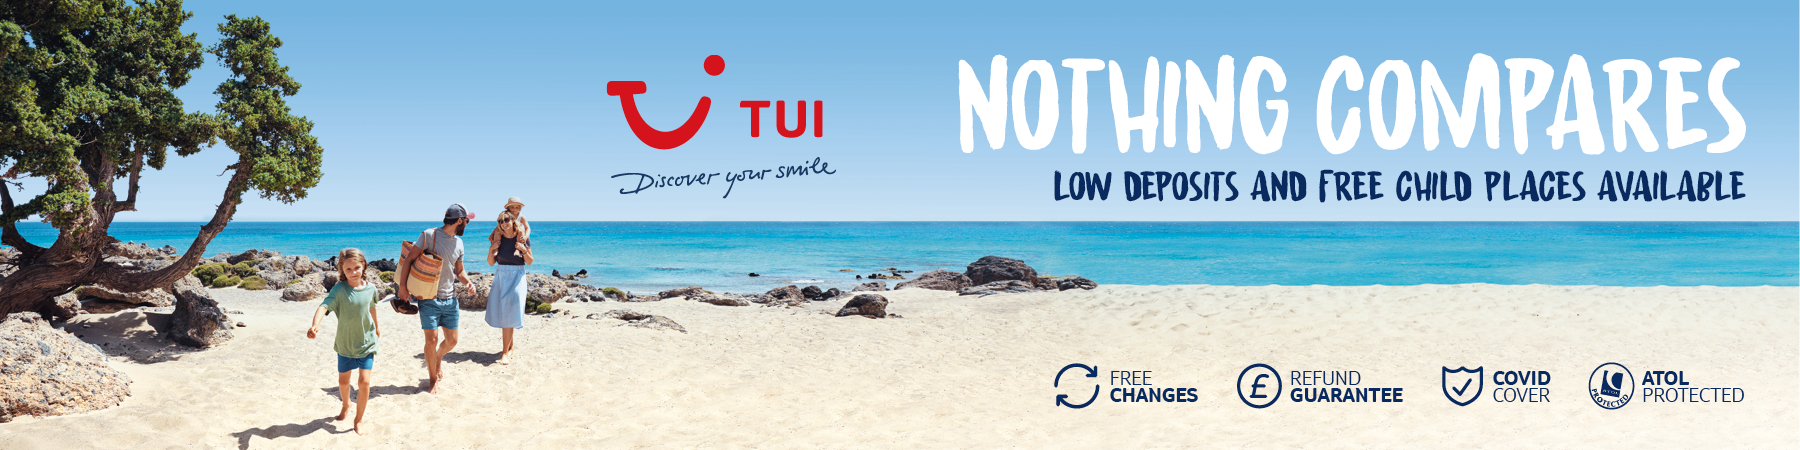 TUI Nothing Compares